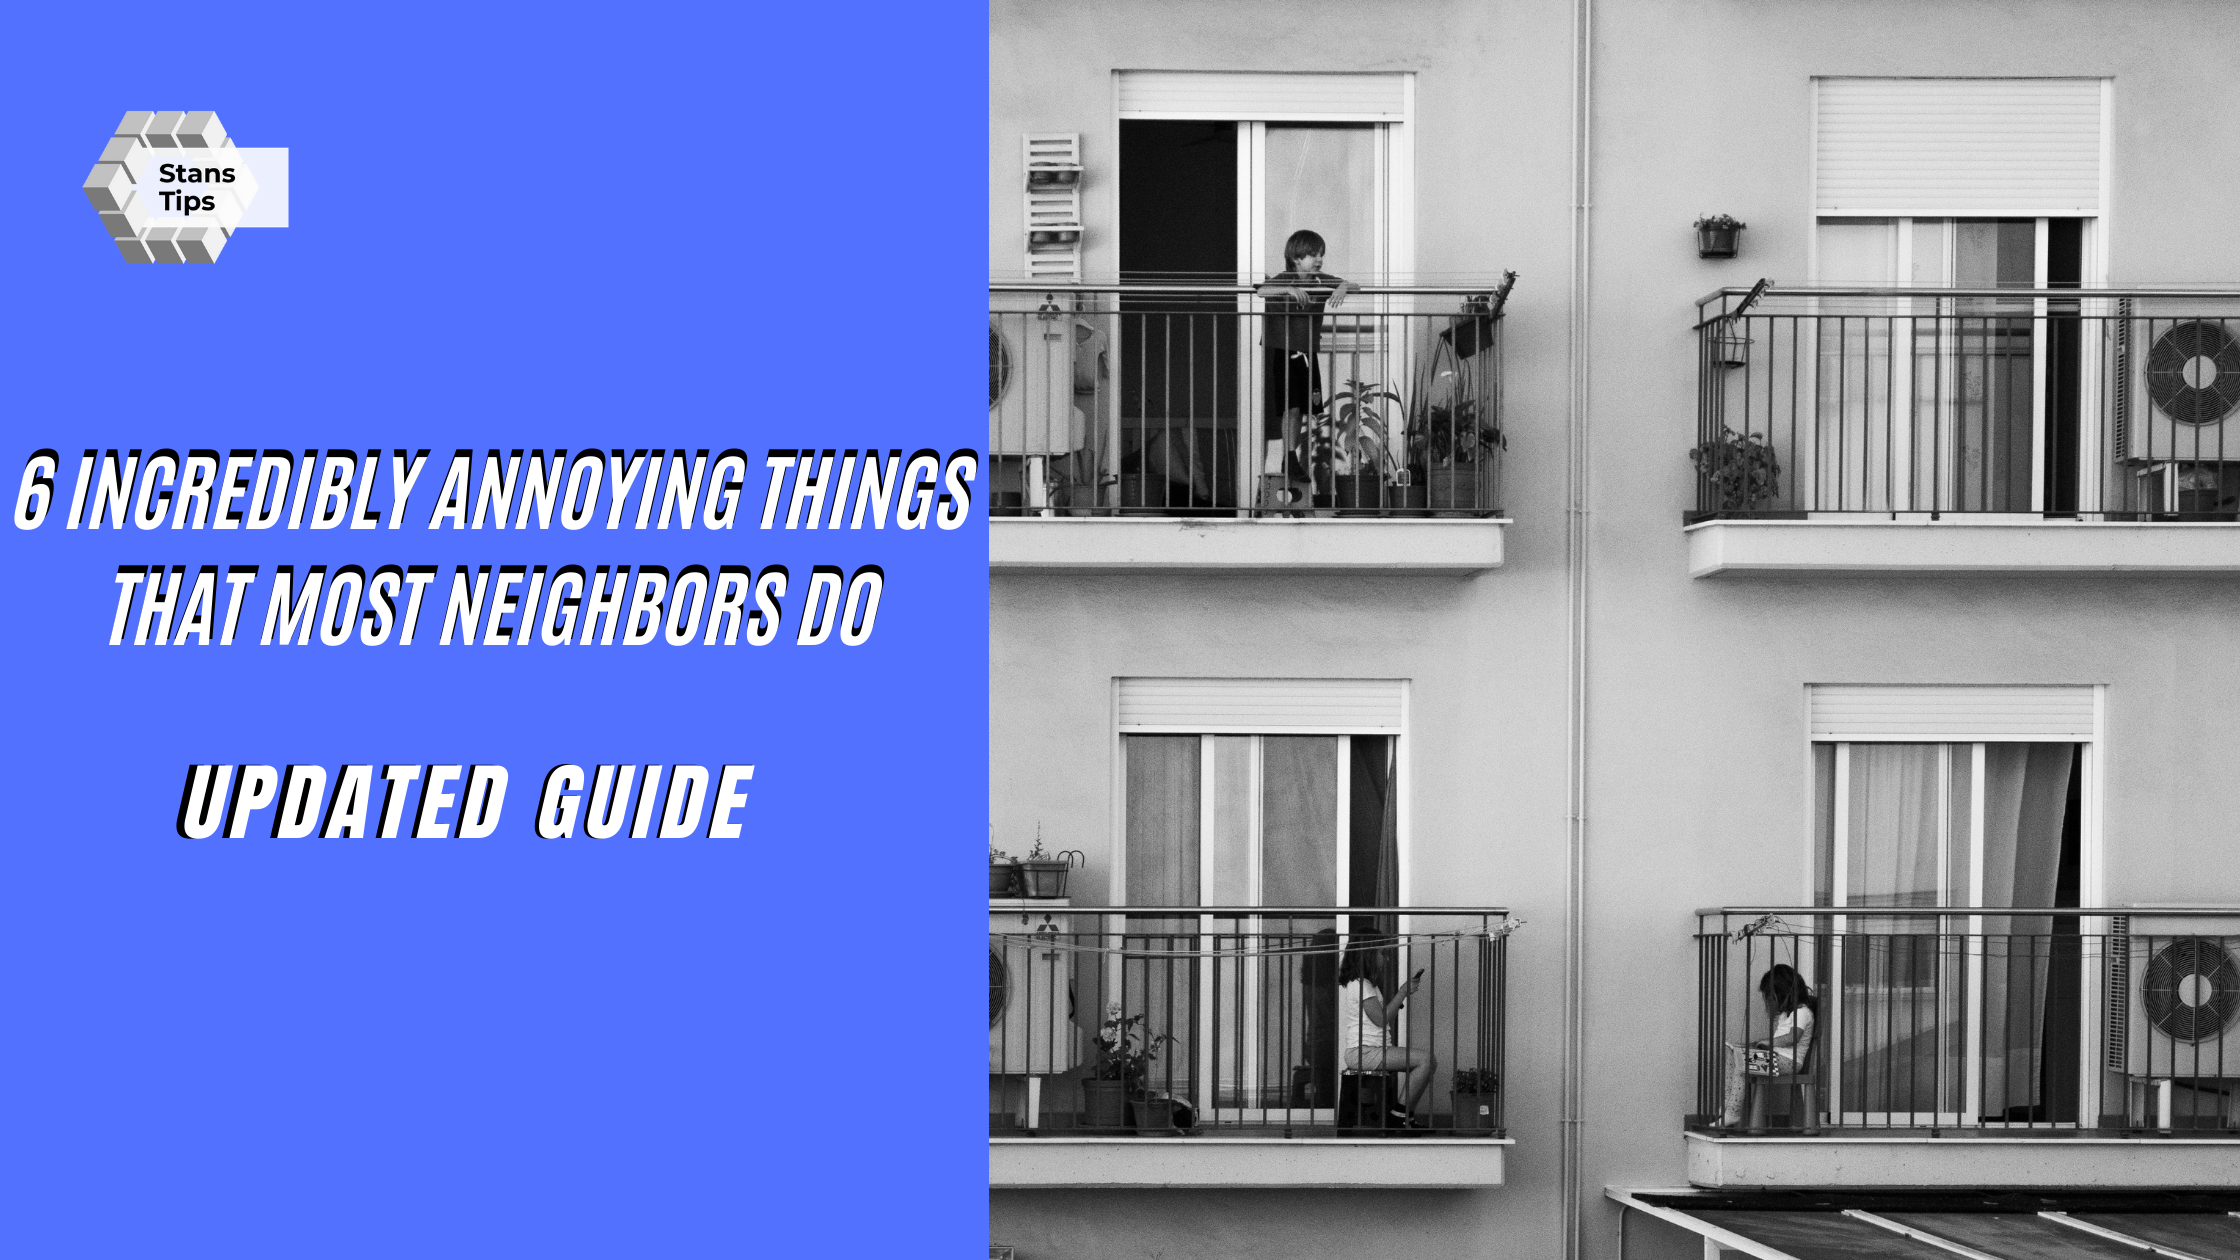 Annoying Things That Most Neighbors Do